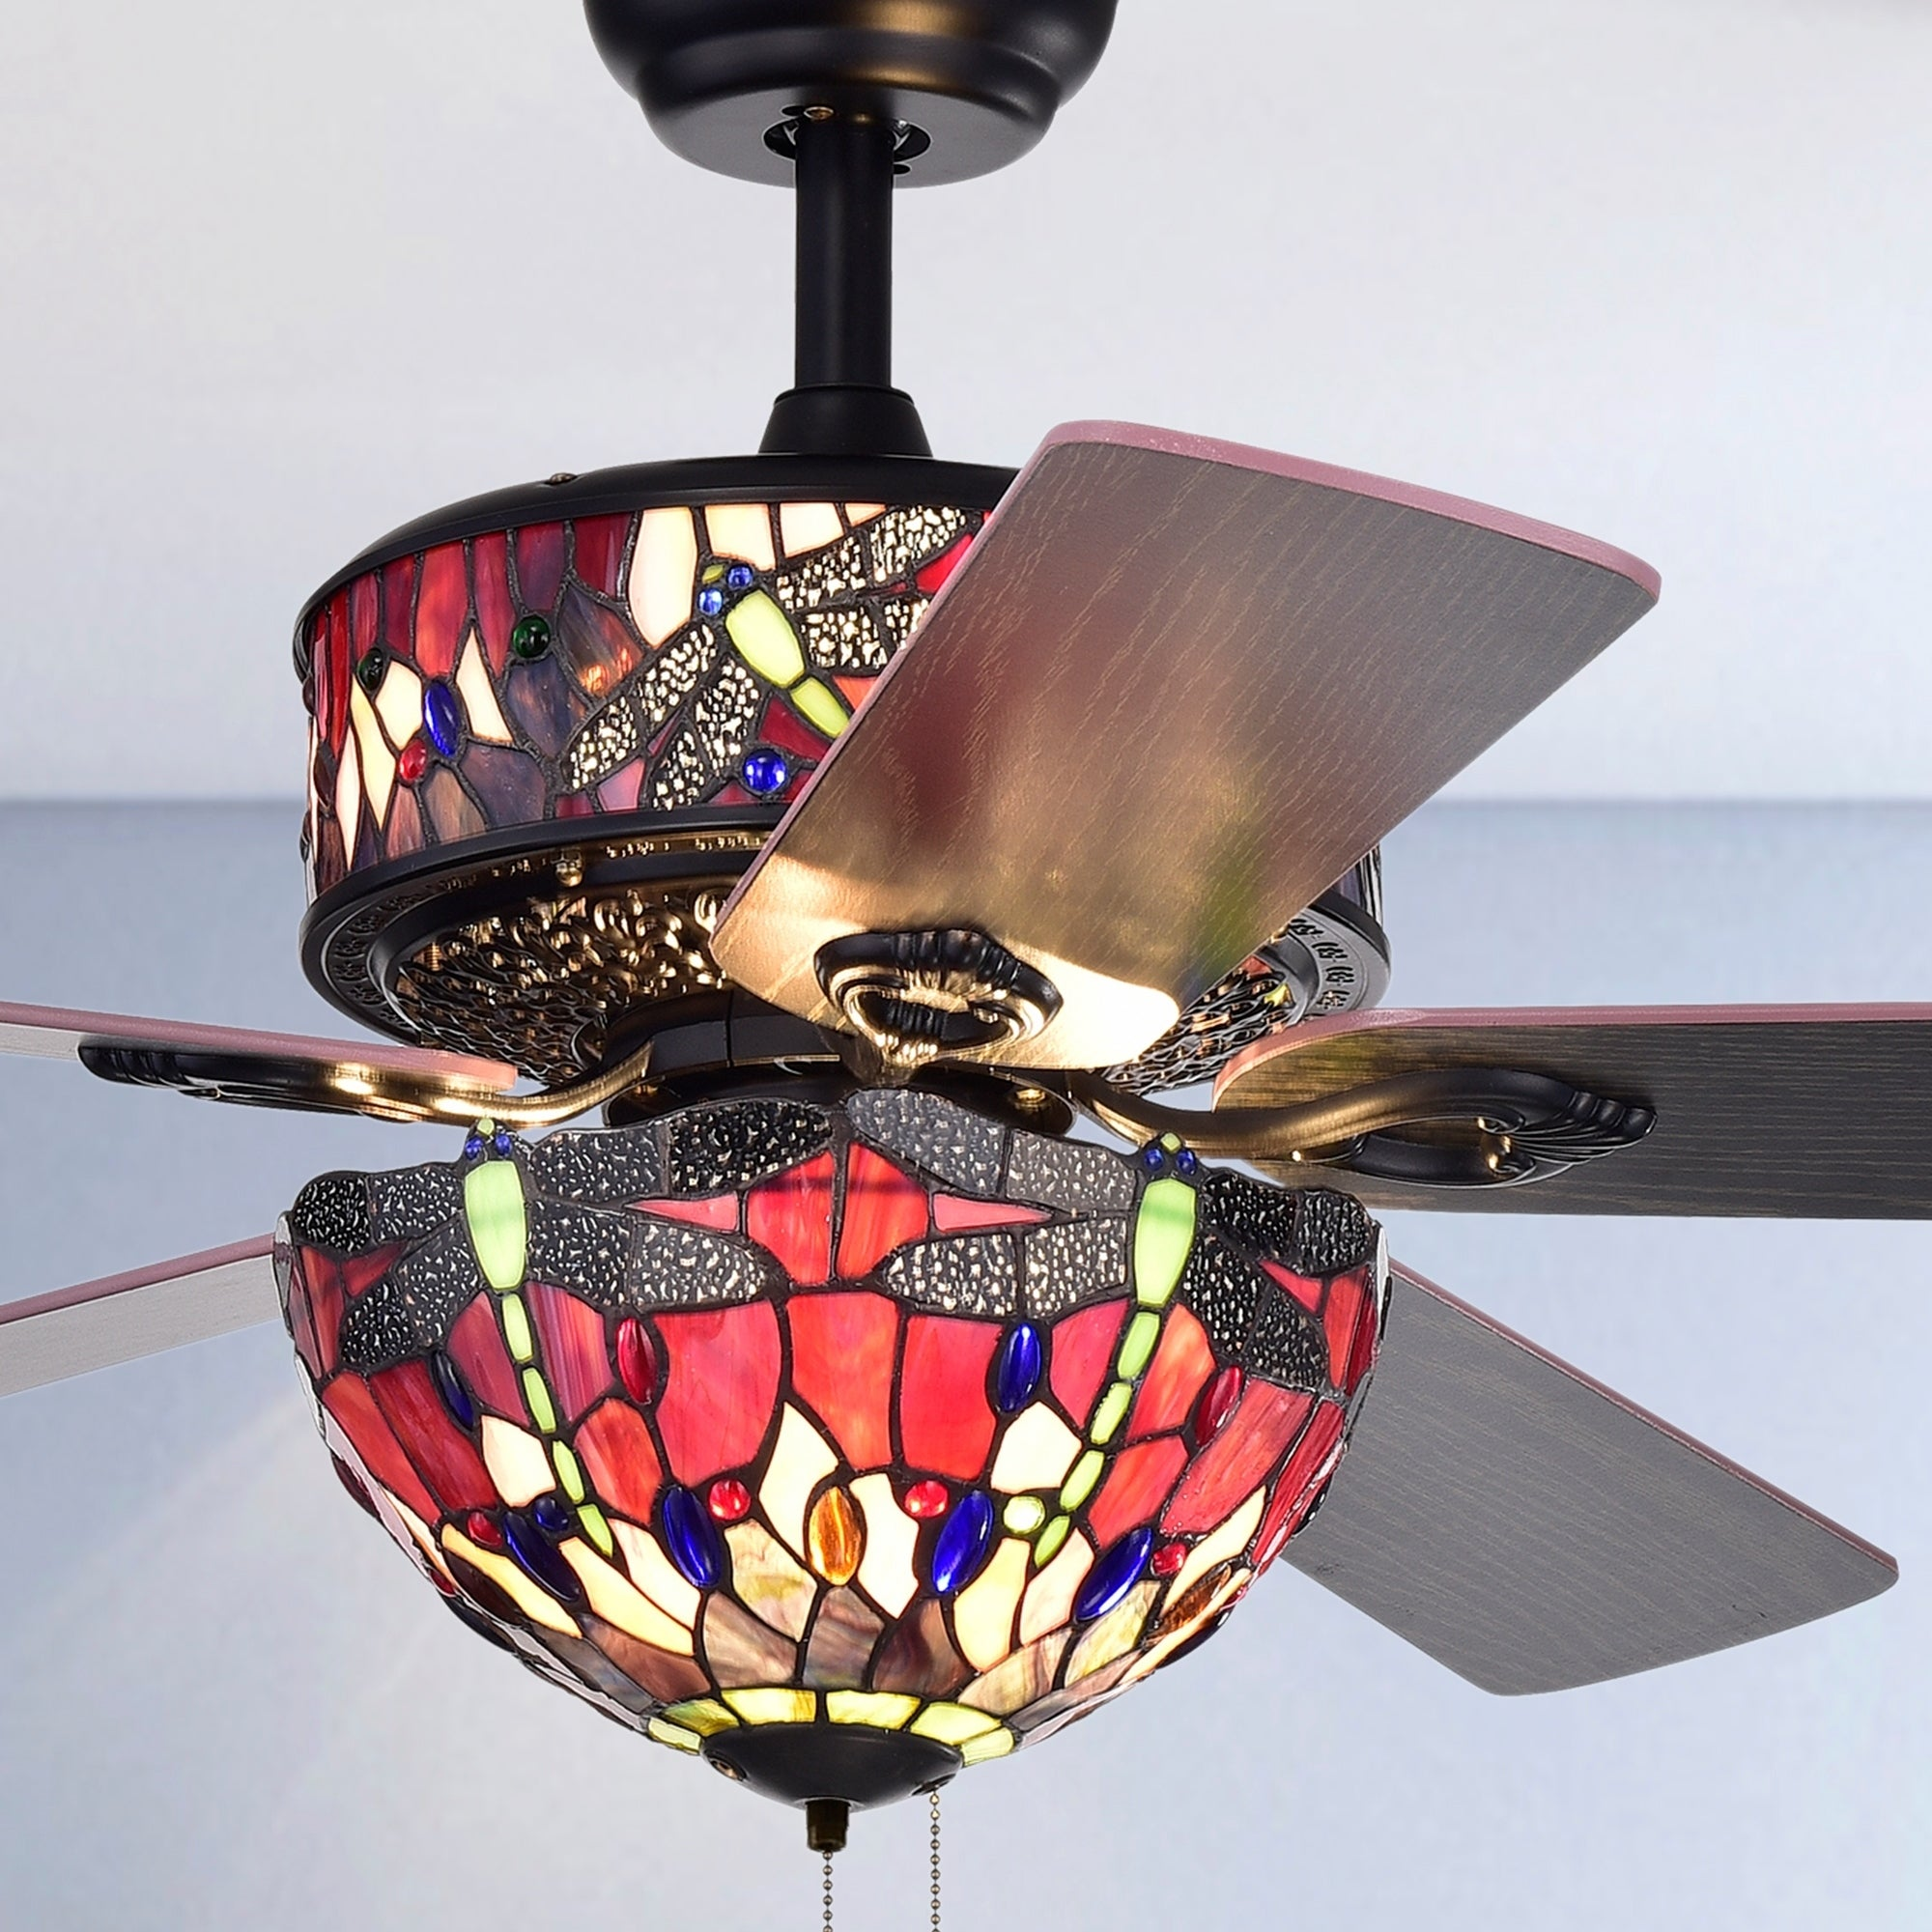 Ceiling fan tiffany style stained glass dragonfly 5 blade 52in matte jalev 6 light dragonfly tiffany 5 blade 52 inch matte black ceiling fan mozeypictures Choice Image